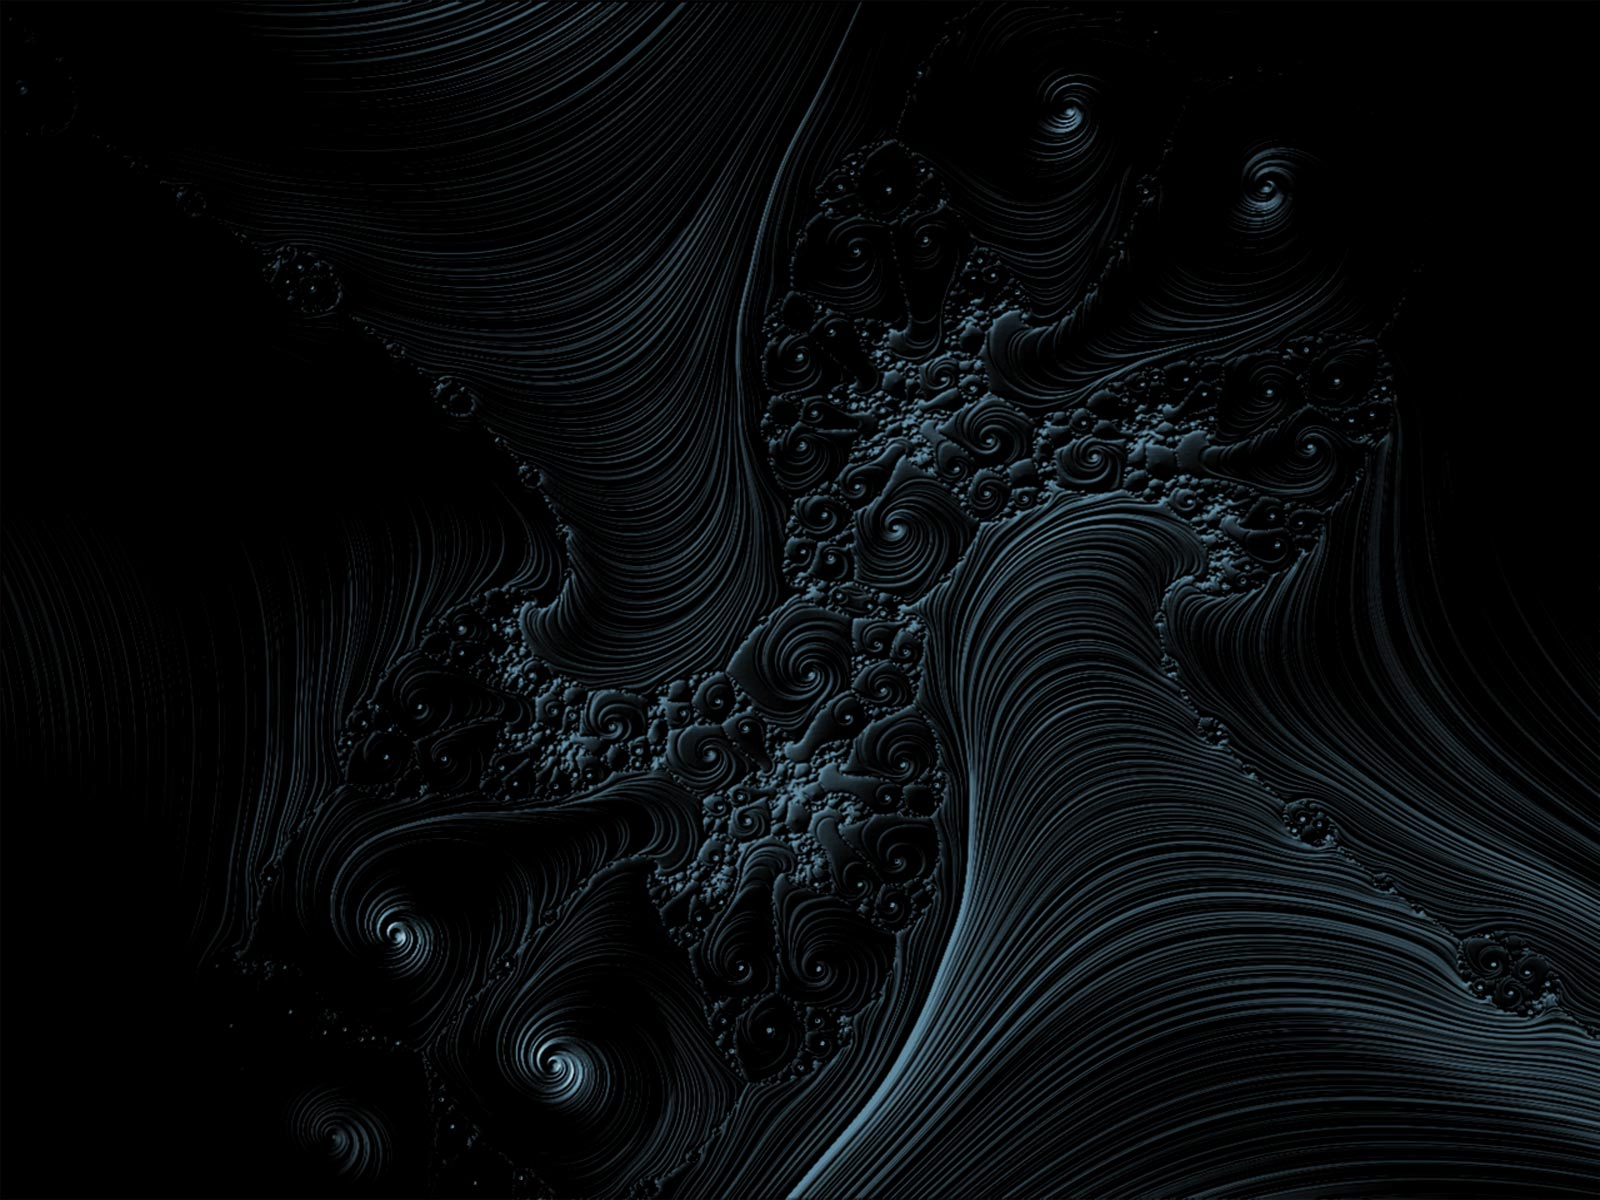 Abstract Background Picture Abstract Ultra Hd Wallpapers Dark 1600x1200 Download Hd Wallpaper Wallpapertip